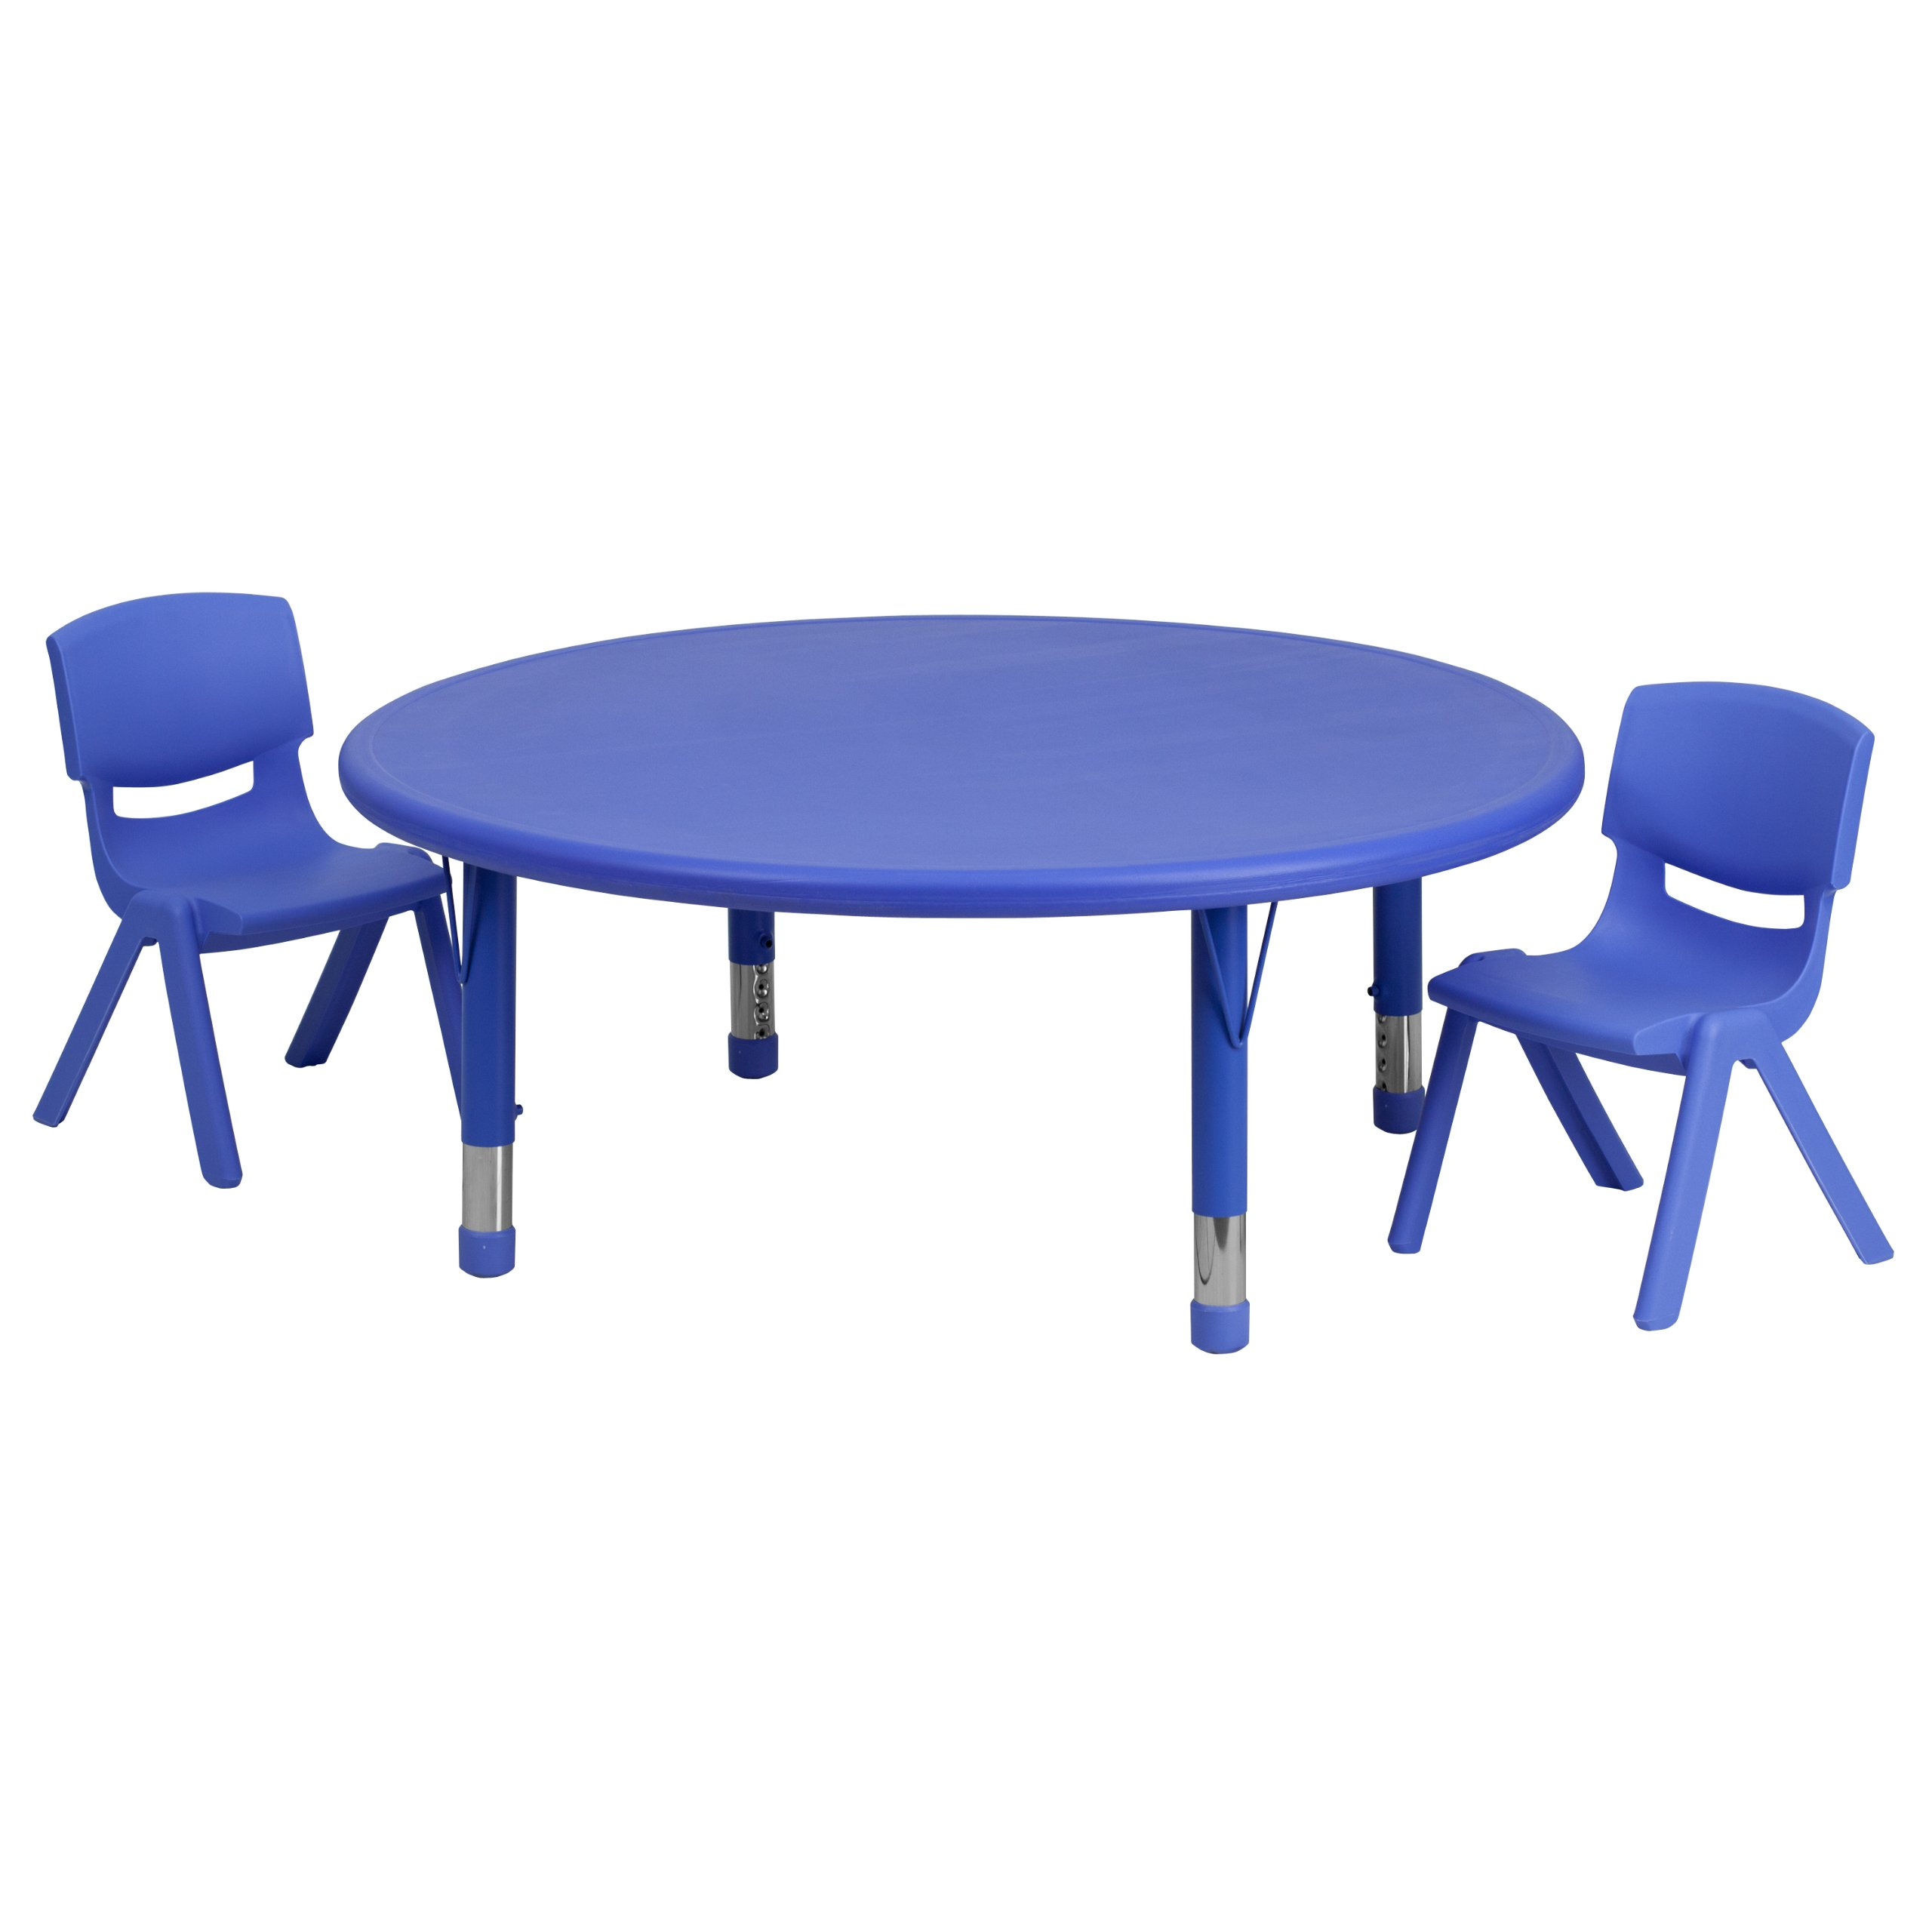 Flash Furniture 45'' Round Adjustable Blue Plastic Activity Table Set with 2 School Stack Chairs